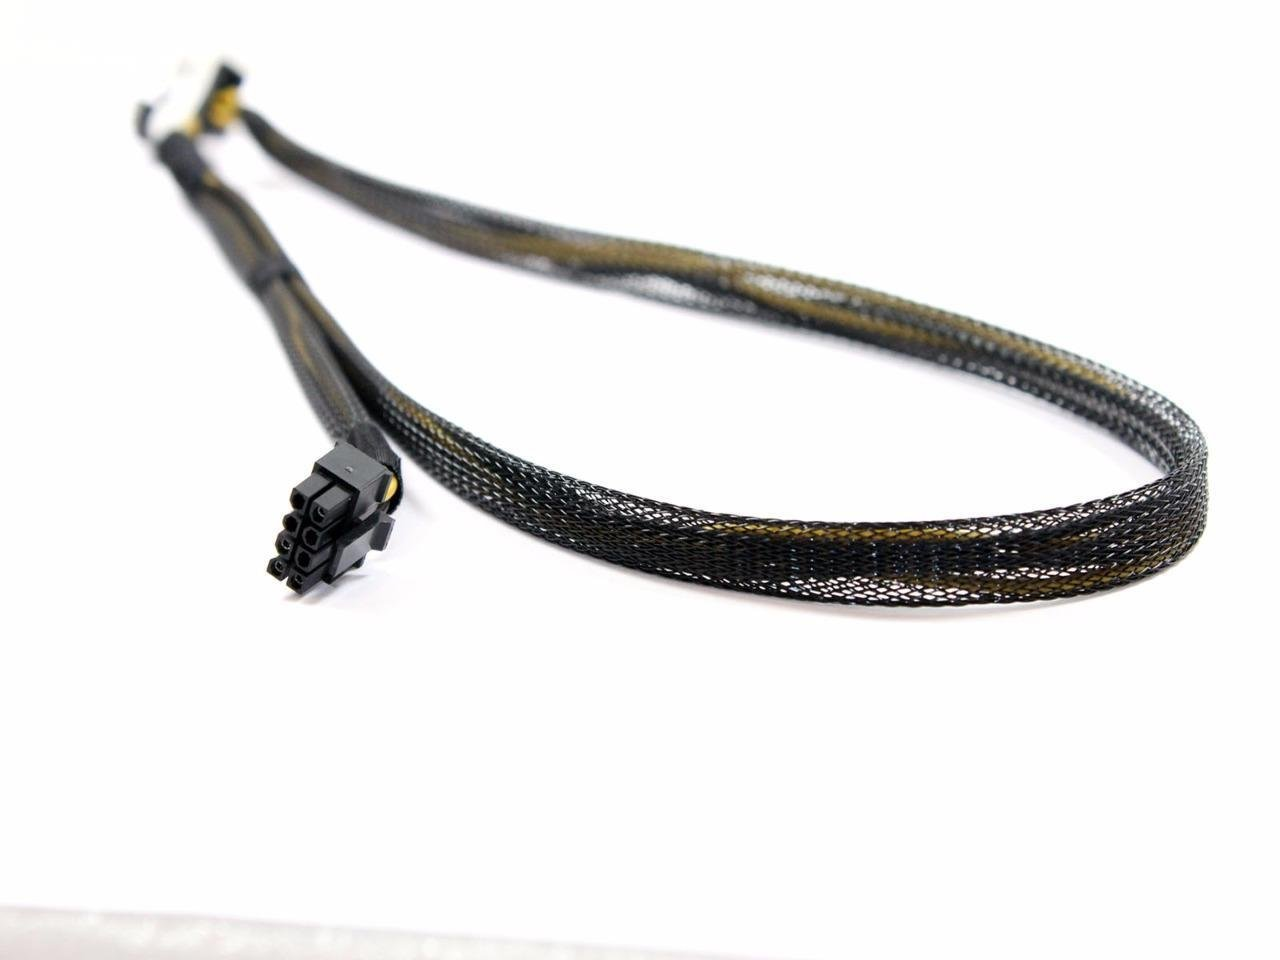 Dell PowerEdge R620 Power Cable 42Y6C 042Y6C by Dell (Image #4)